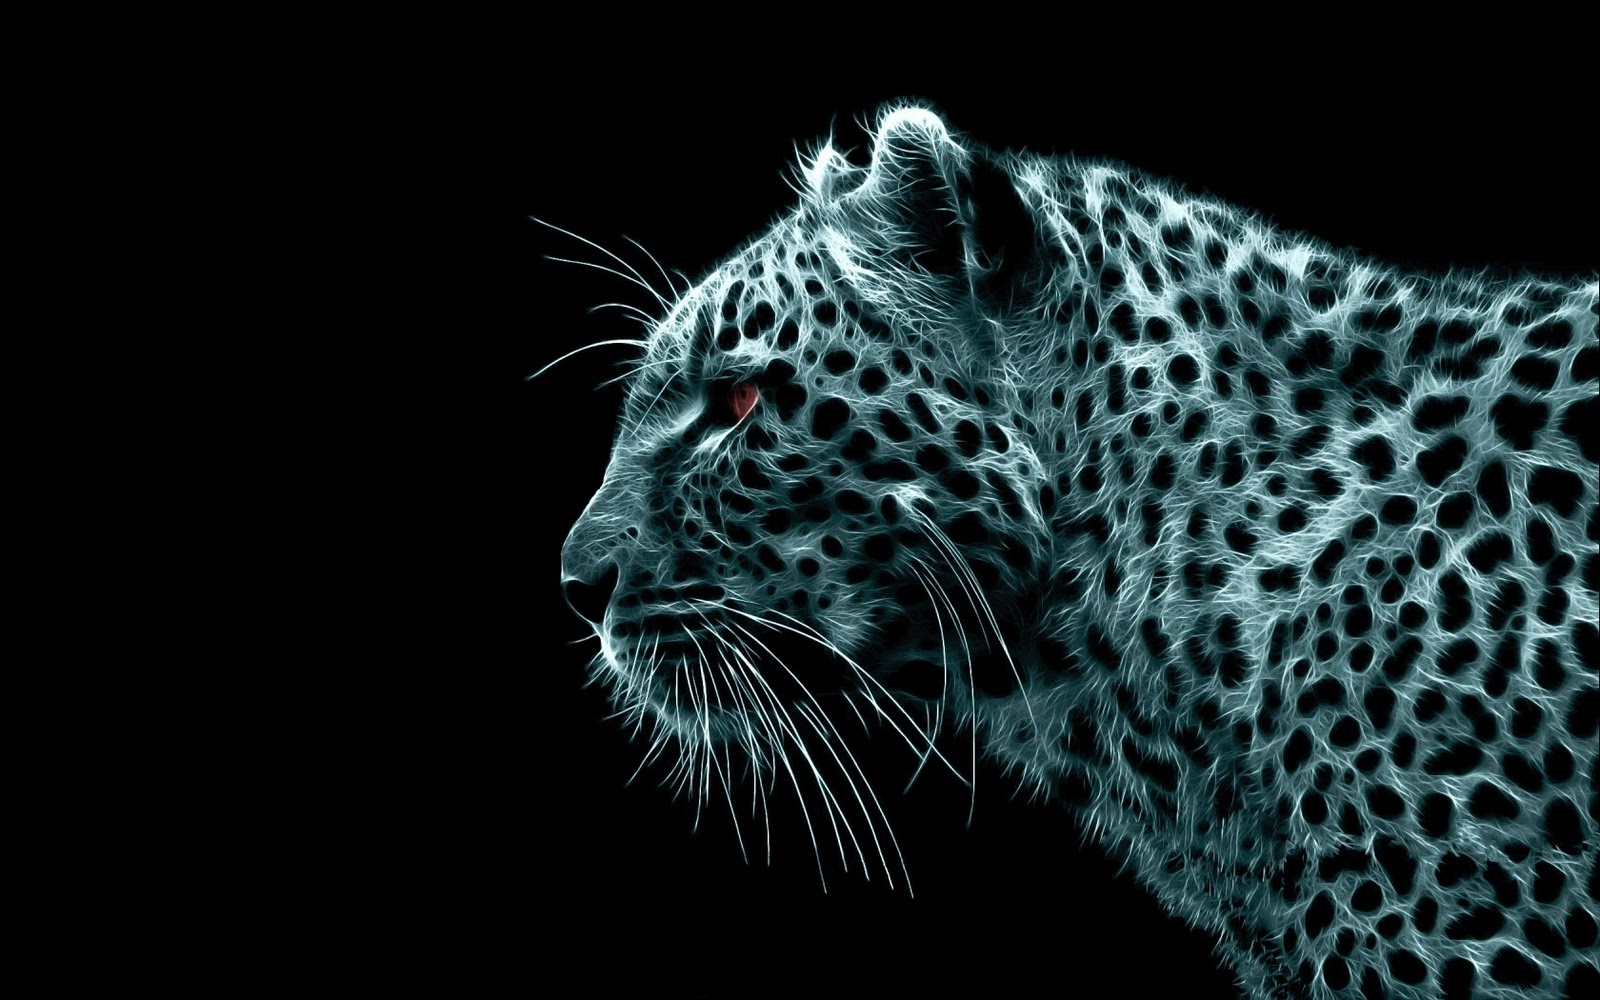 Qq wallpapers 20 big cat wallpapers - Cool backgrounds of cats ...